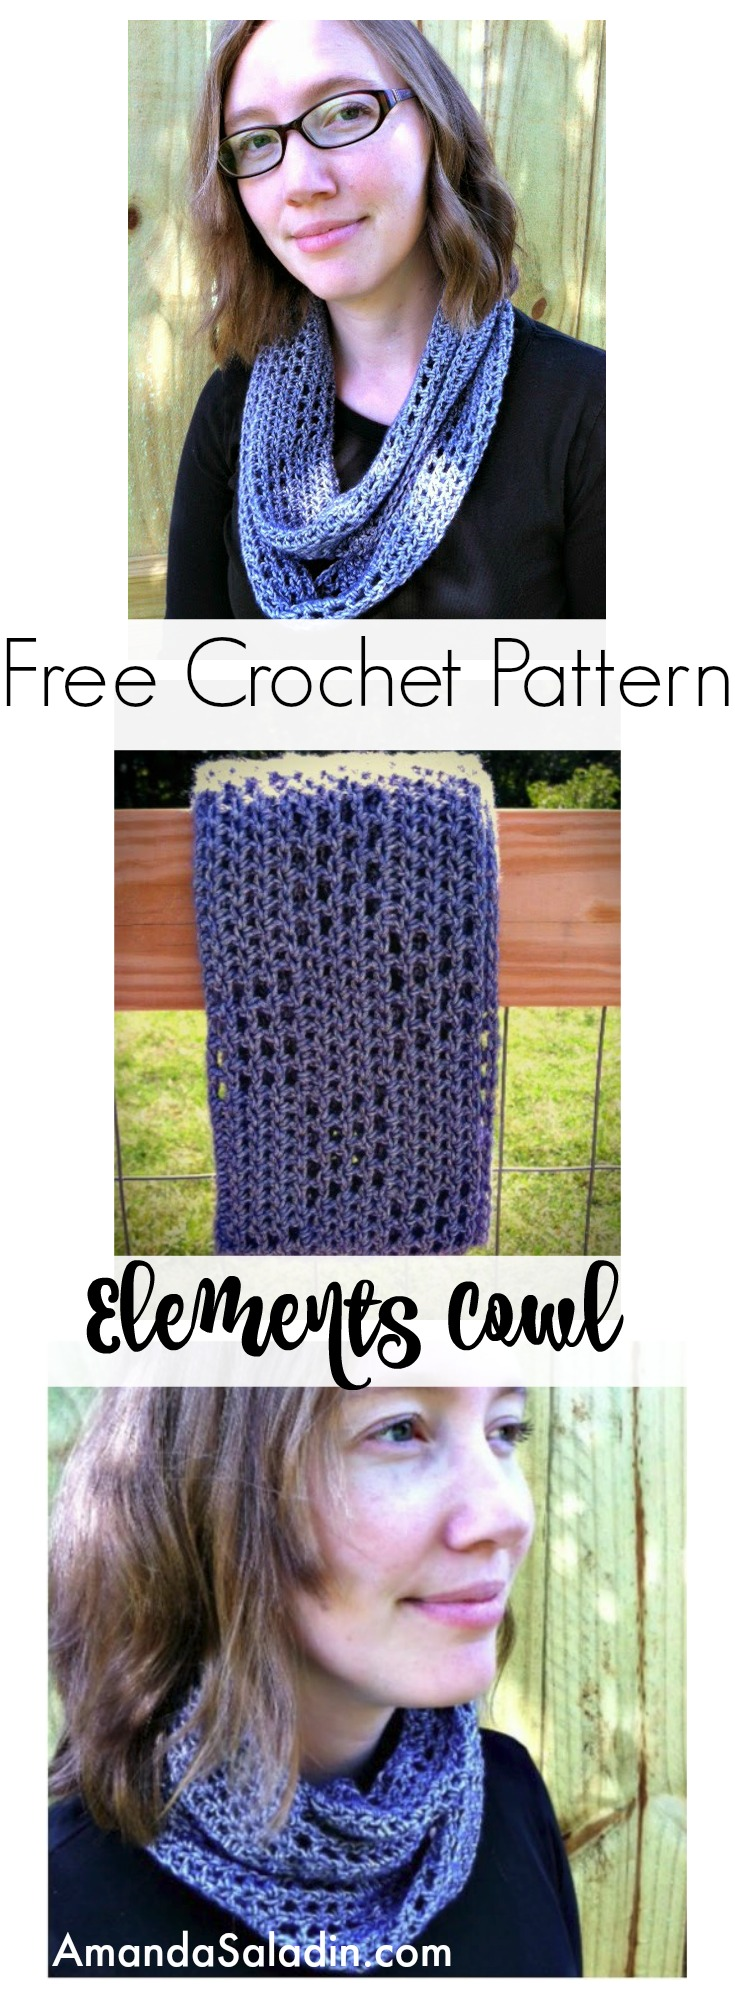 Free Crochet Pattern - Elements Cowl